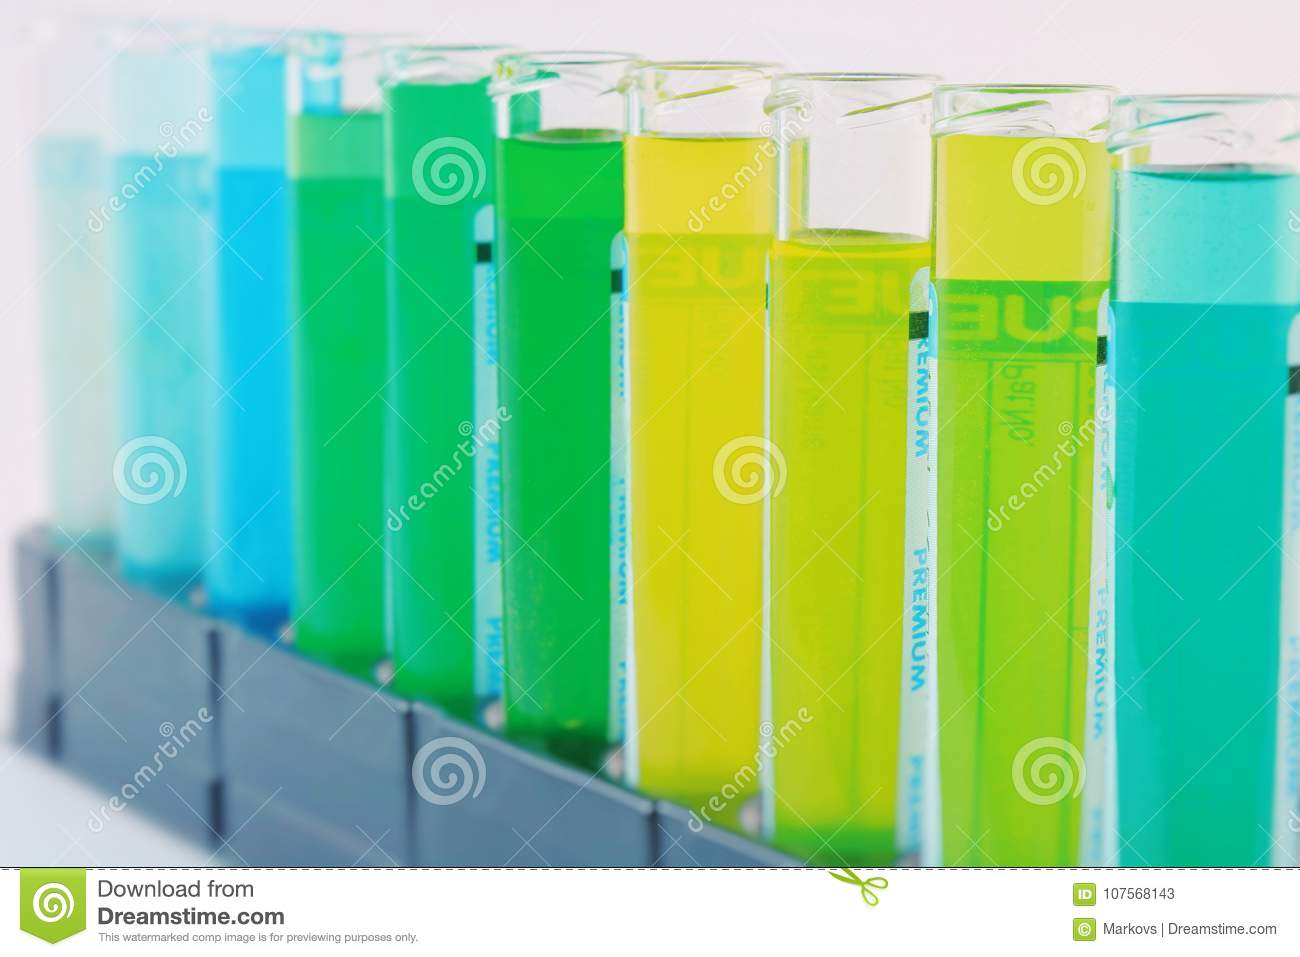 Chemical flasks with multi-colored solutions inside, isolated on white background, set on a black stand